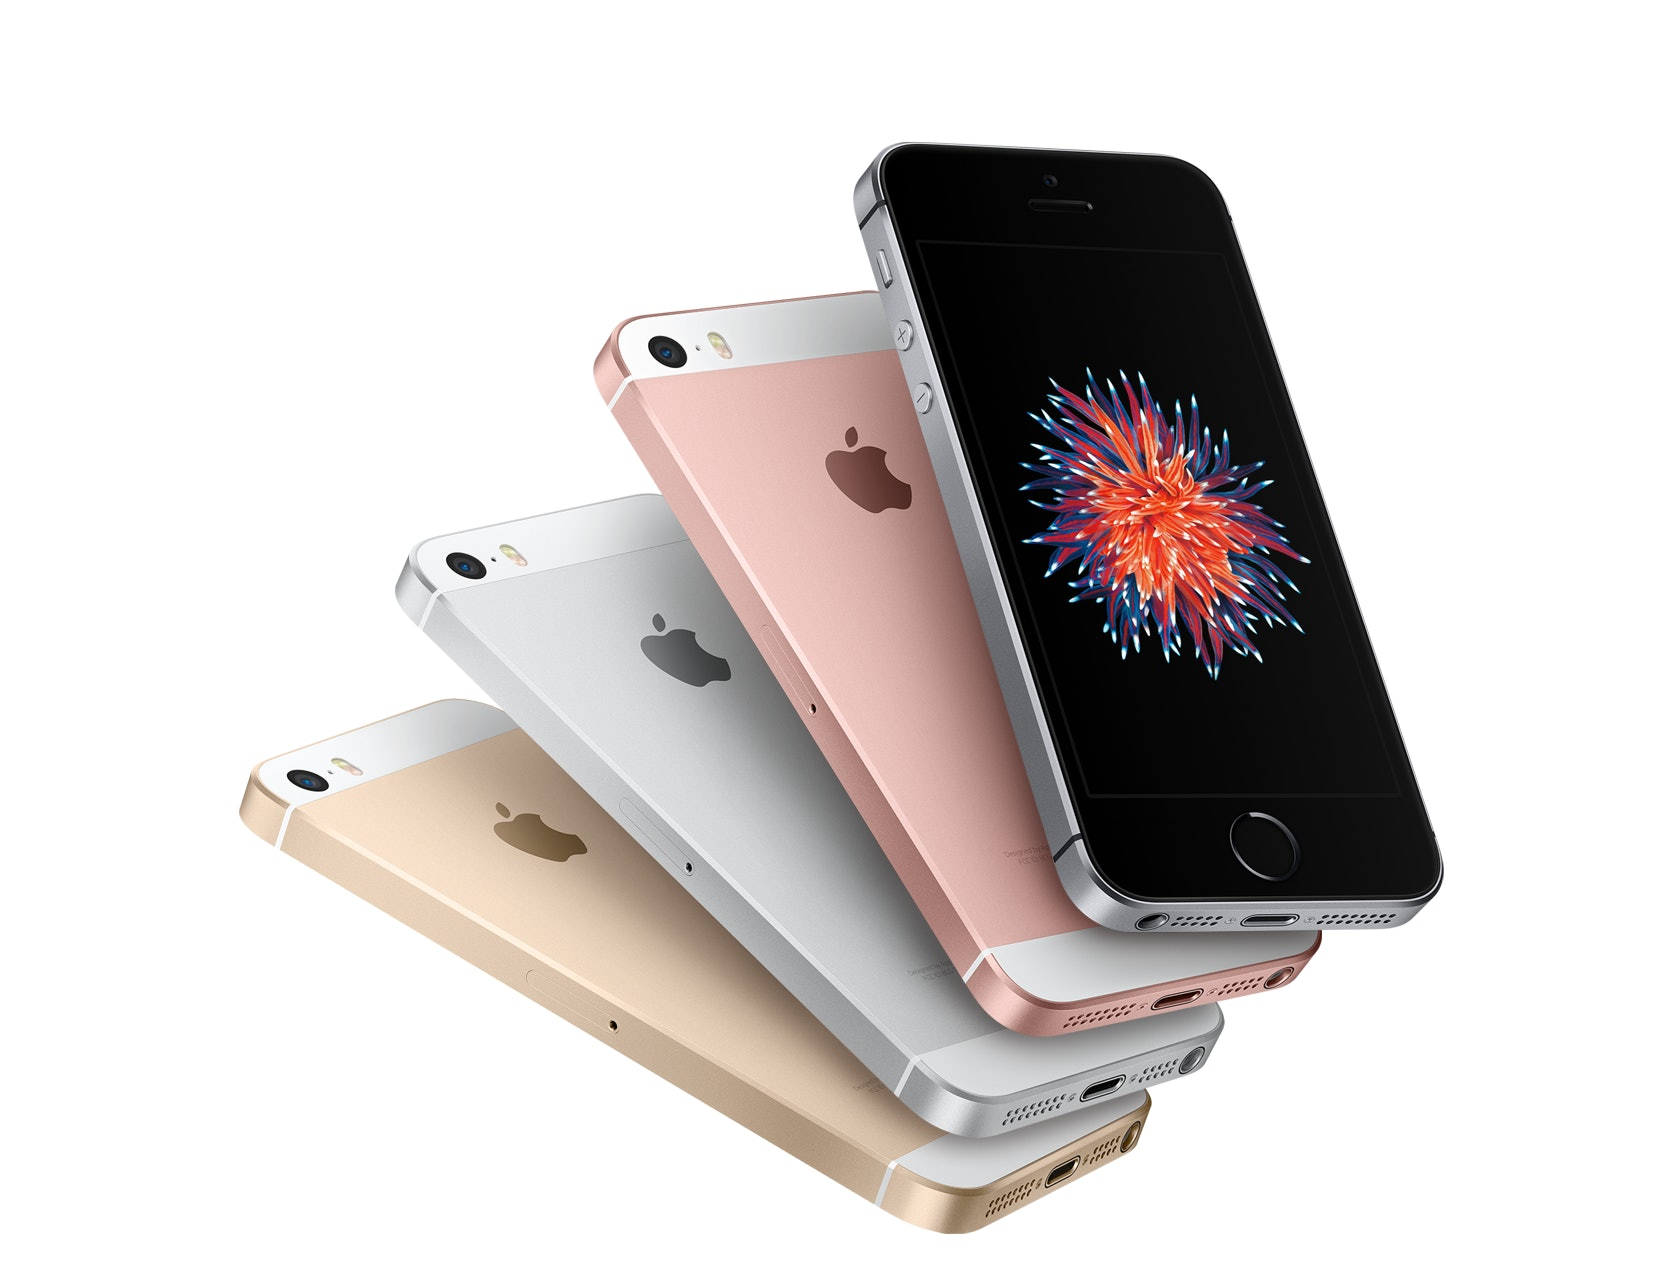 The current iPhone SE